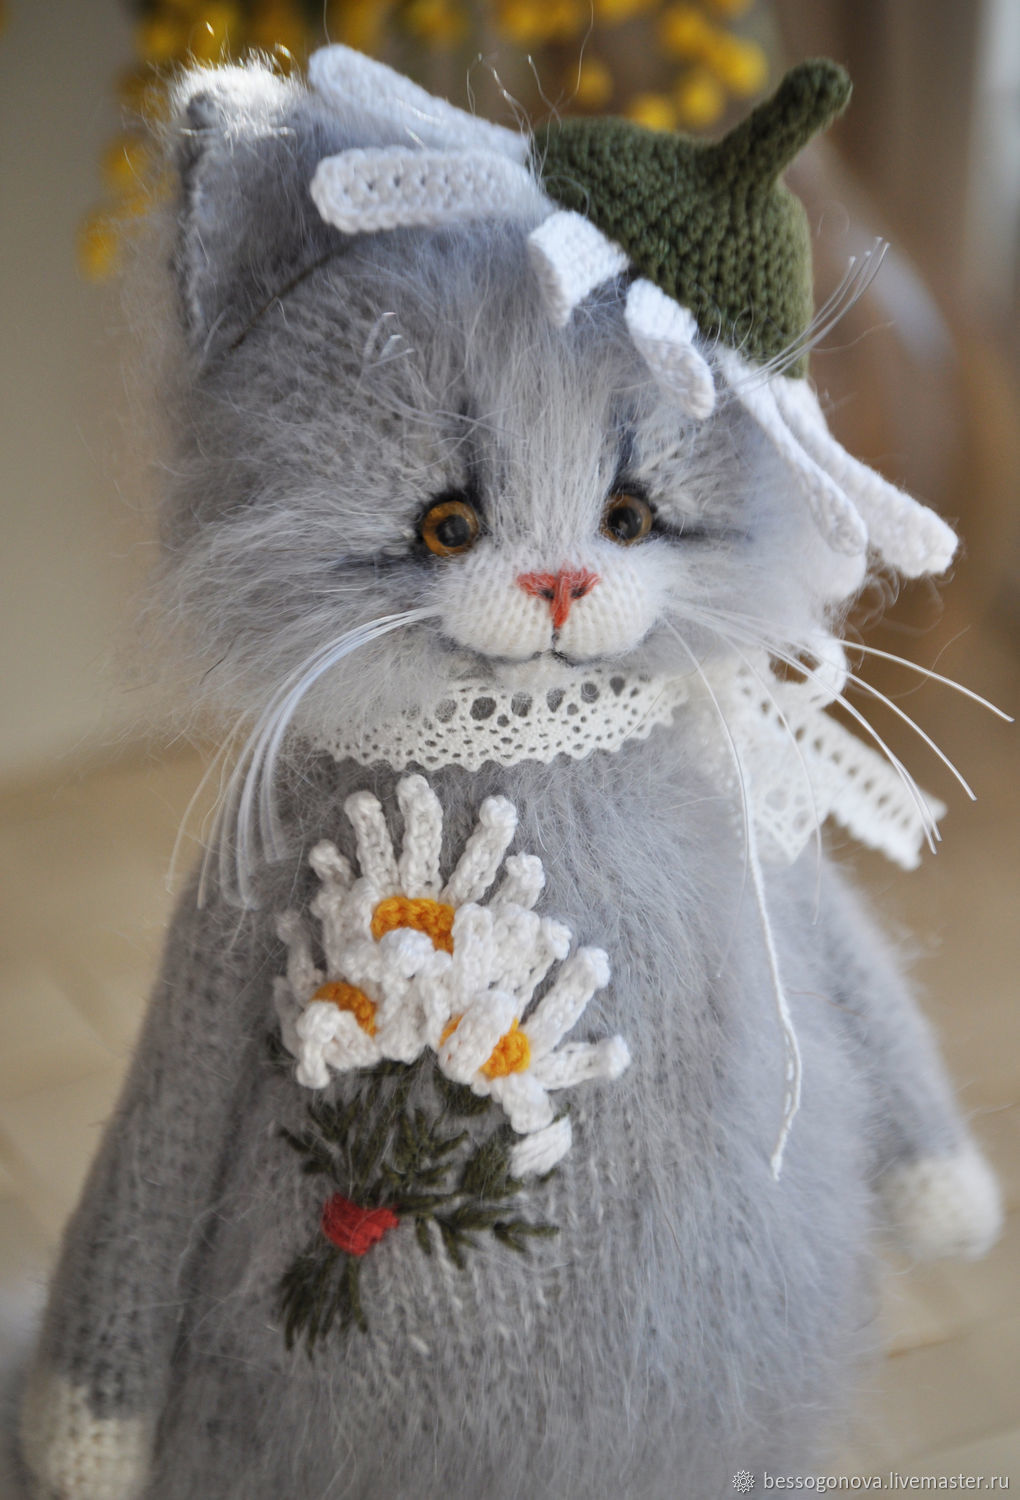 Knitted Cat with Embroideriy.